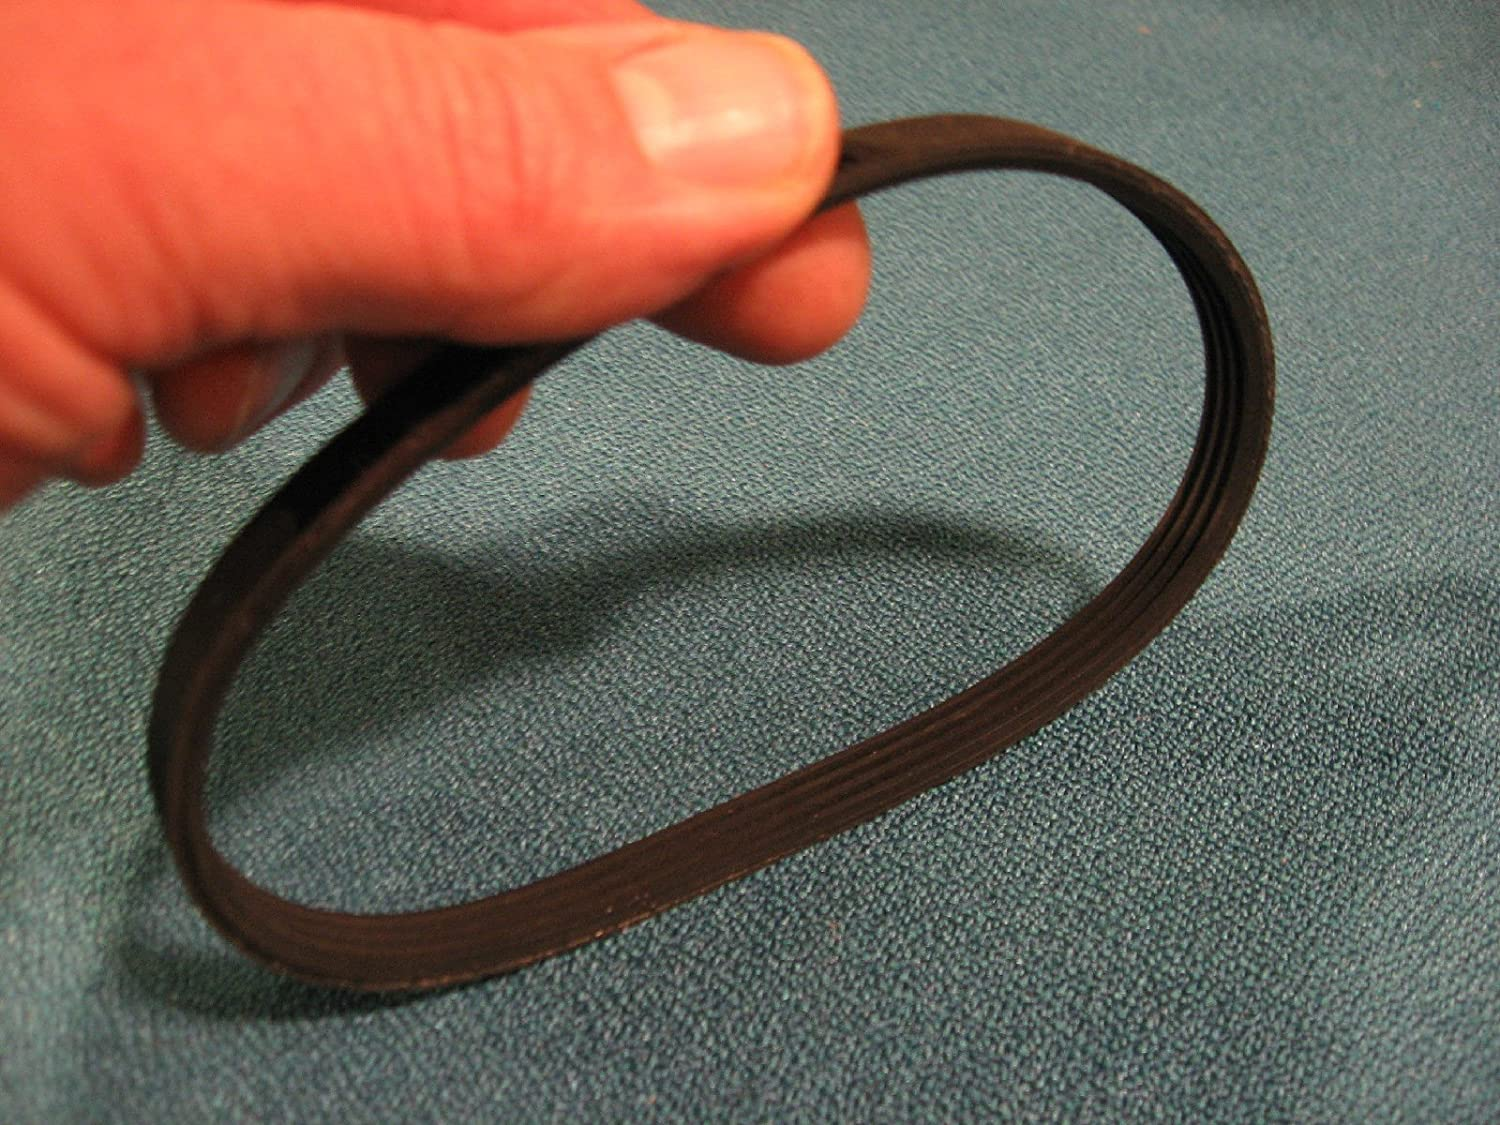 NEW DRIVE BELT 4PJ373 MADE IN USE FOR AIR PUMP COMPRESSOR 4 RIB BELT Generic